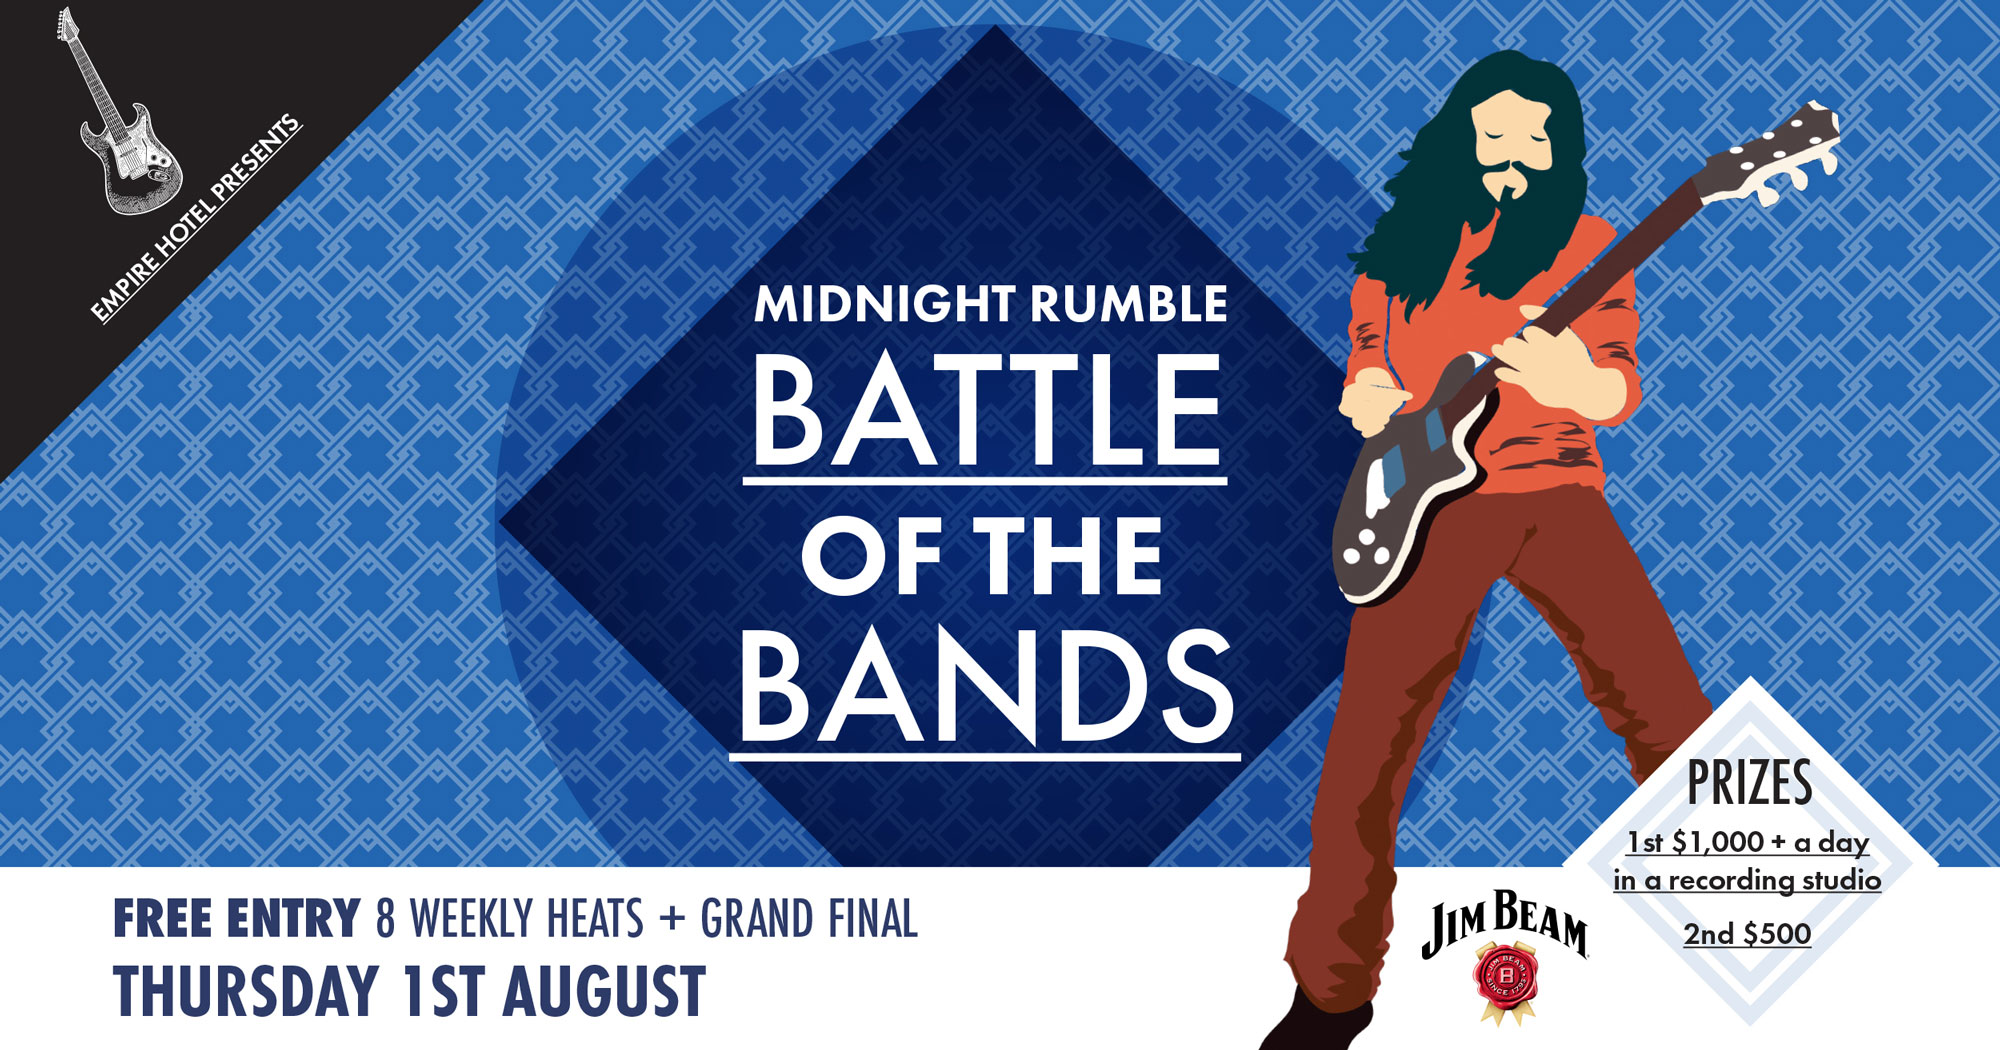 Empire Hotel Battle of the Bands